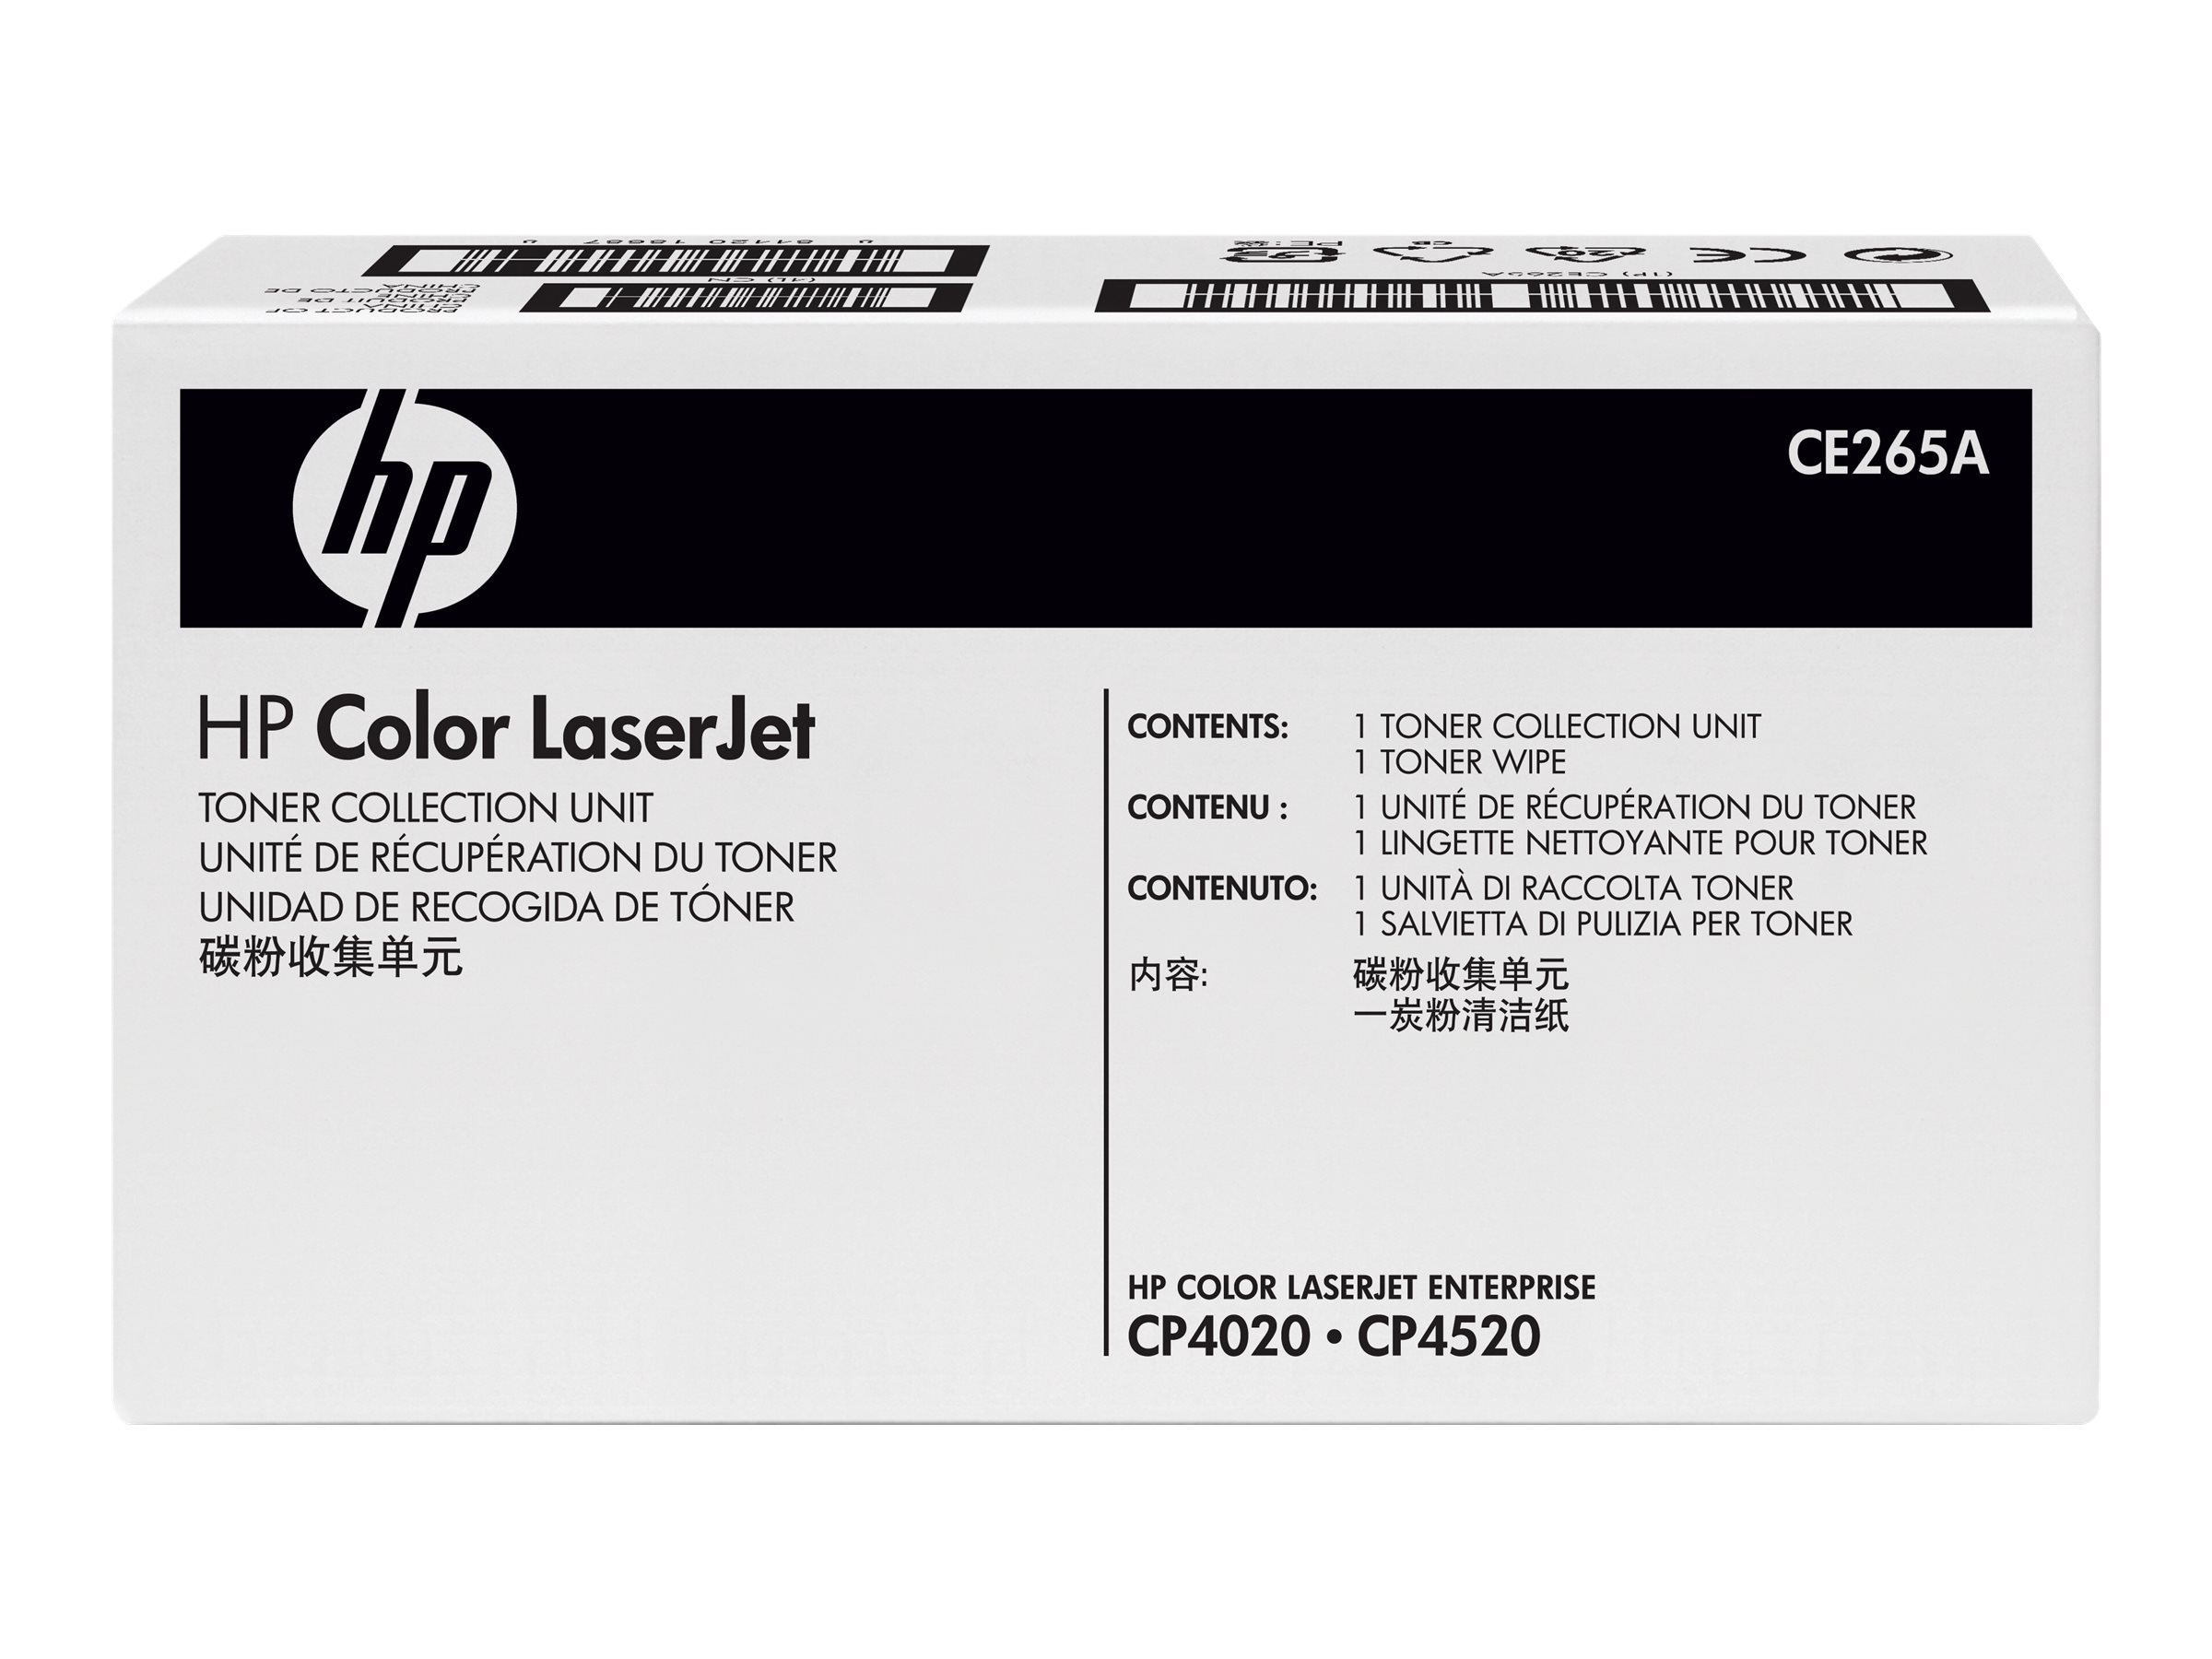 HP Toner Collection Unit - Tonersammler - für LaserJet Enterprise MFP M680